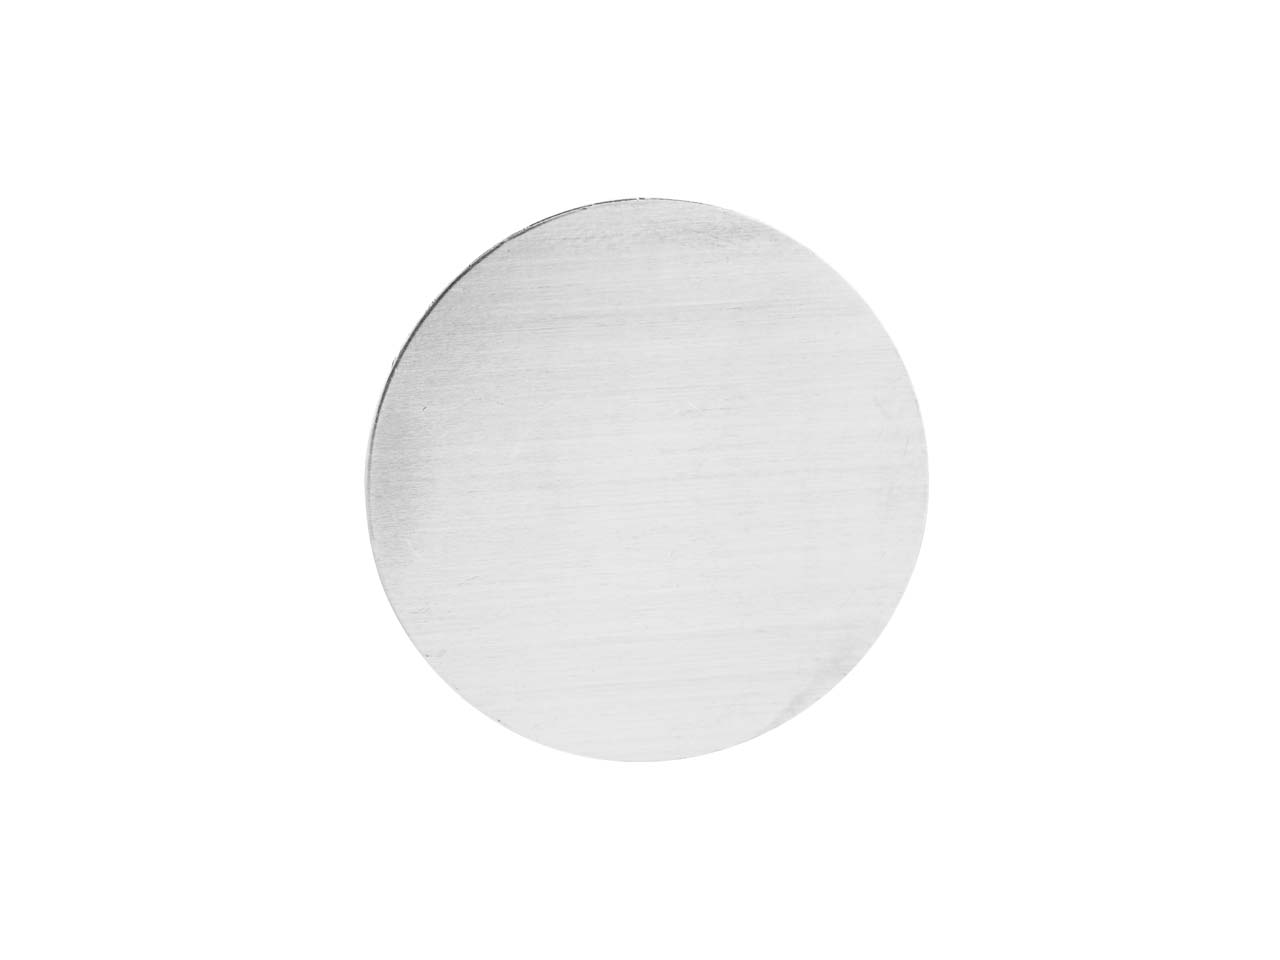 Impressart Aluminium Blanks Round  12.7mm X 0.8mm, Pack of 20